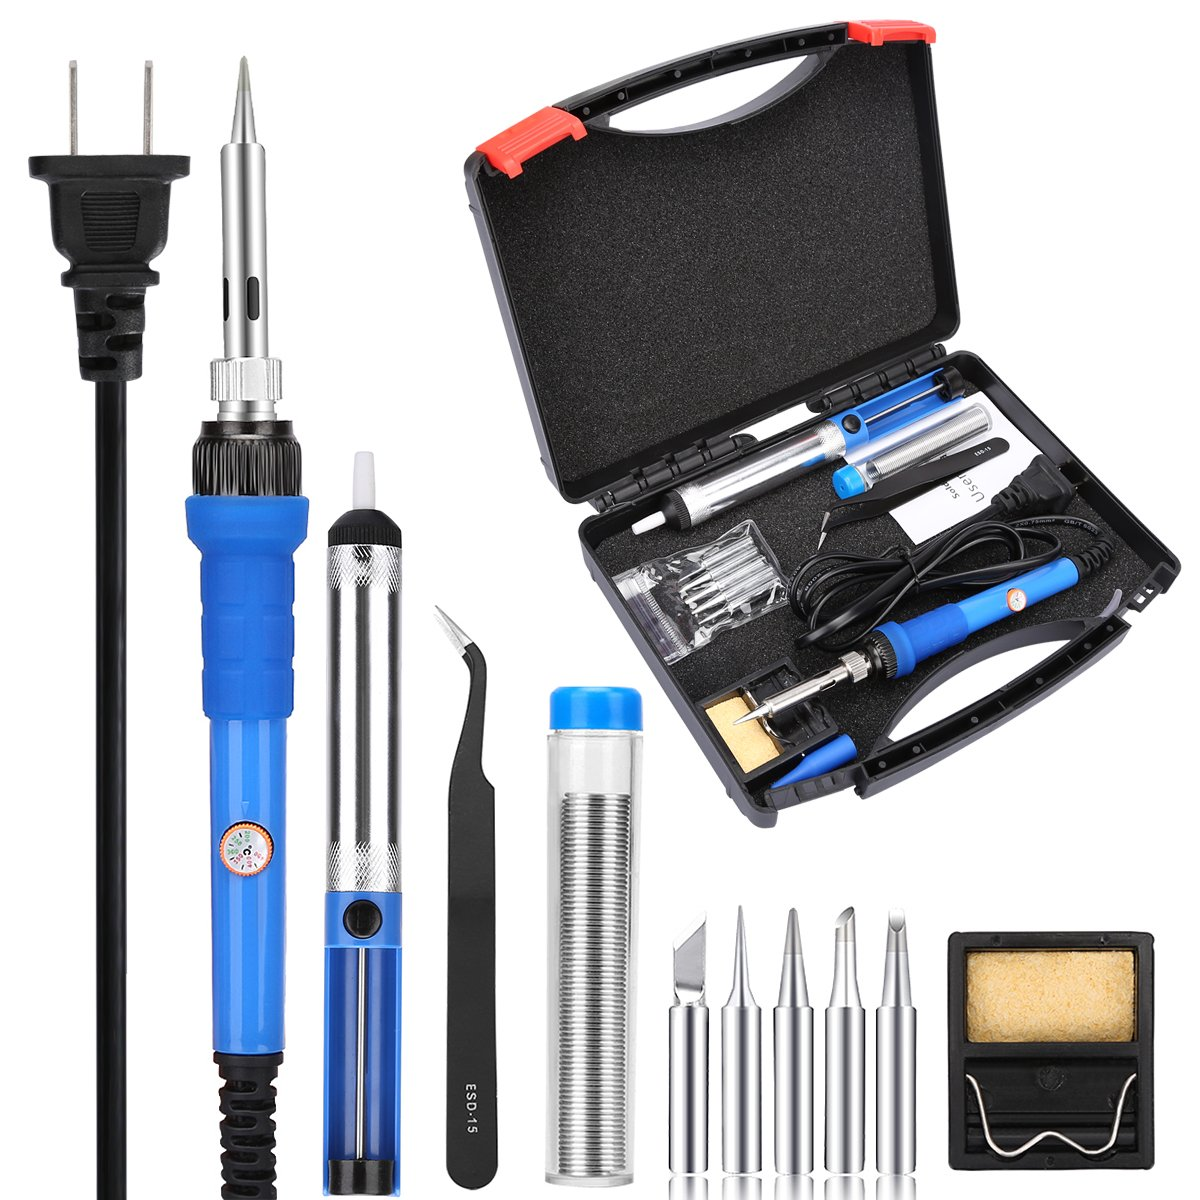 KEDSUM 7 in 1 Soldering Iron Kit with Tool Case, 60W 110V-Adjustable Temperature Welding Soldering Iron with 5 Soldering Tips, Solder Wire, Desoldering Pump, Tweezer, Stand with Cleaning Sponge